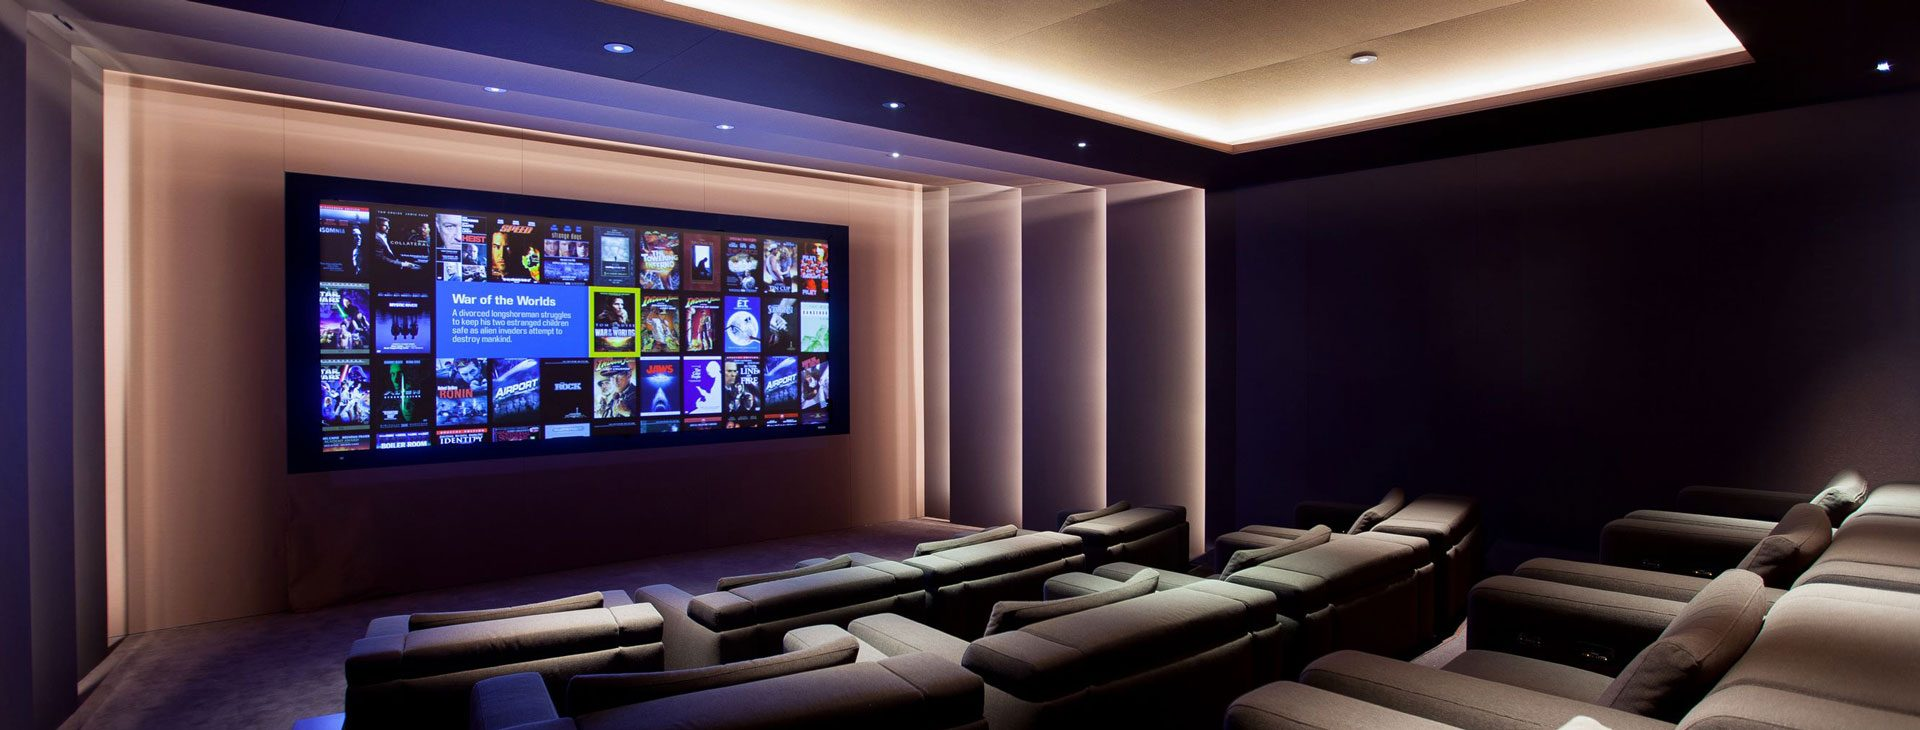 home cinema installation in london visionworks kensington. Black Bedroom Furniture Sets. Home Design Ideas